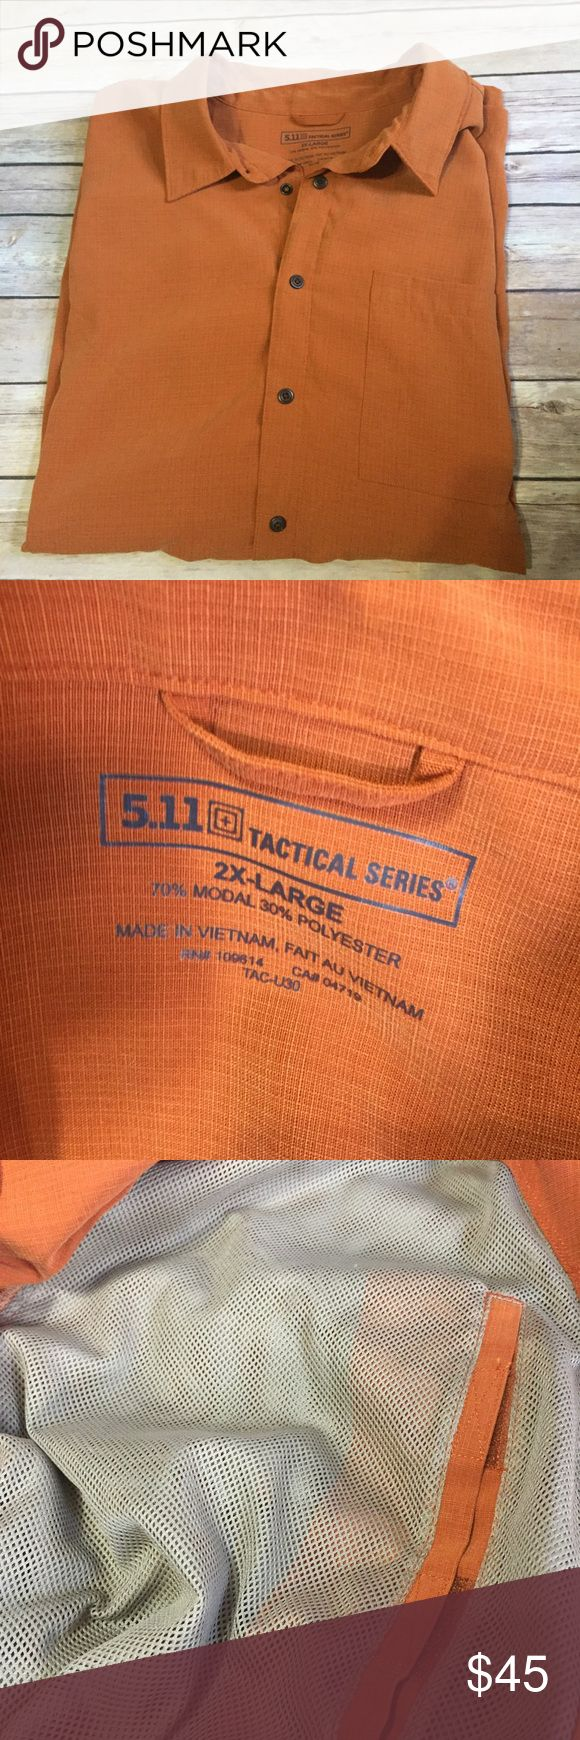 5.11 Tactical Series 2X Short Sleeve Conceal Carry From 5.11 Tactical Conceal Carry Right Or Left Handed Rust Color Snap Button Casual Shirt Sz 2XL Like New Condition 70% Modal 30% poly 5.11 Tactical Shirts Casual Button Down Shirts